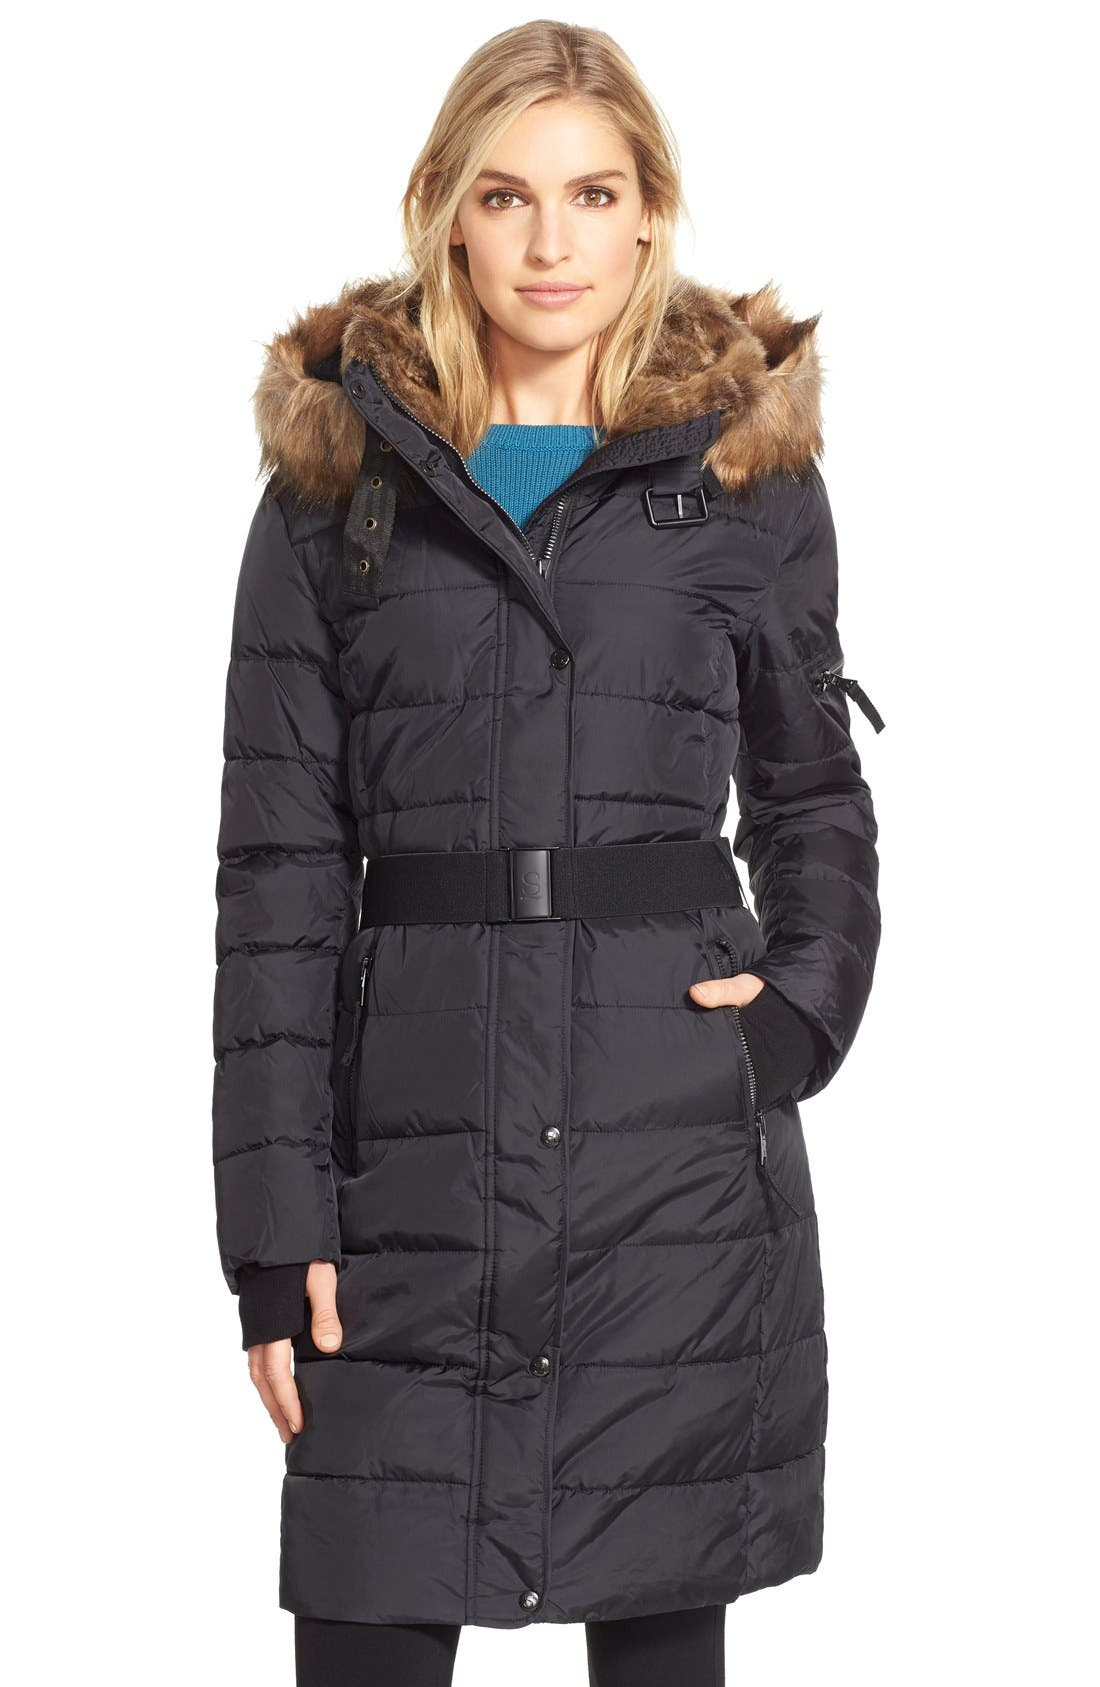 NYC 'Lexington' Faux Fur Trim Belted Hooded Long Quilted Coat,                             Main thumbnail 1, color,                             001